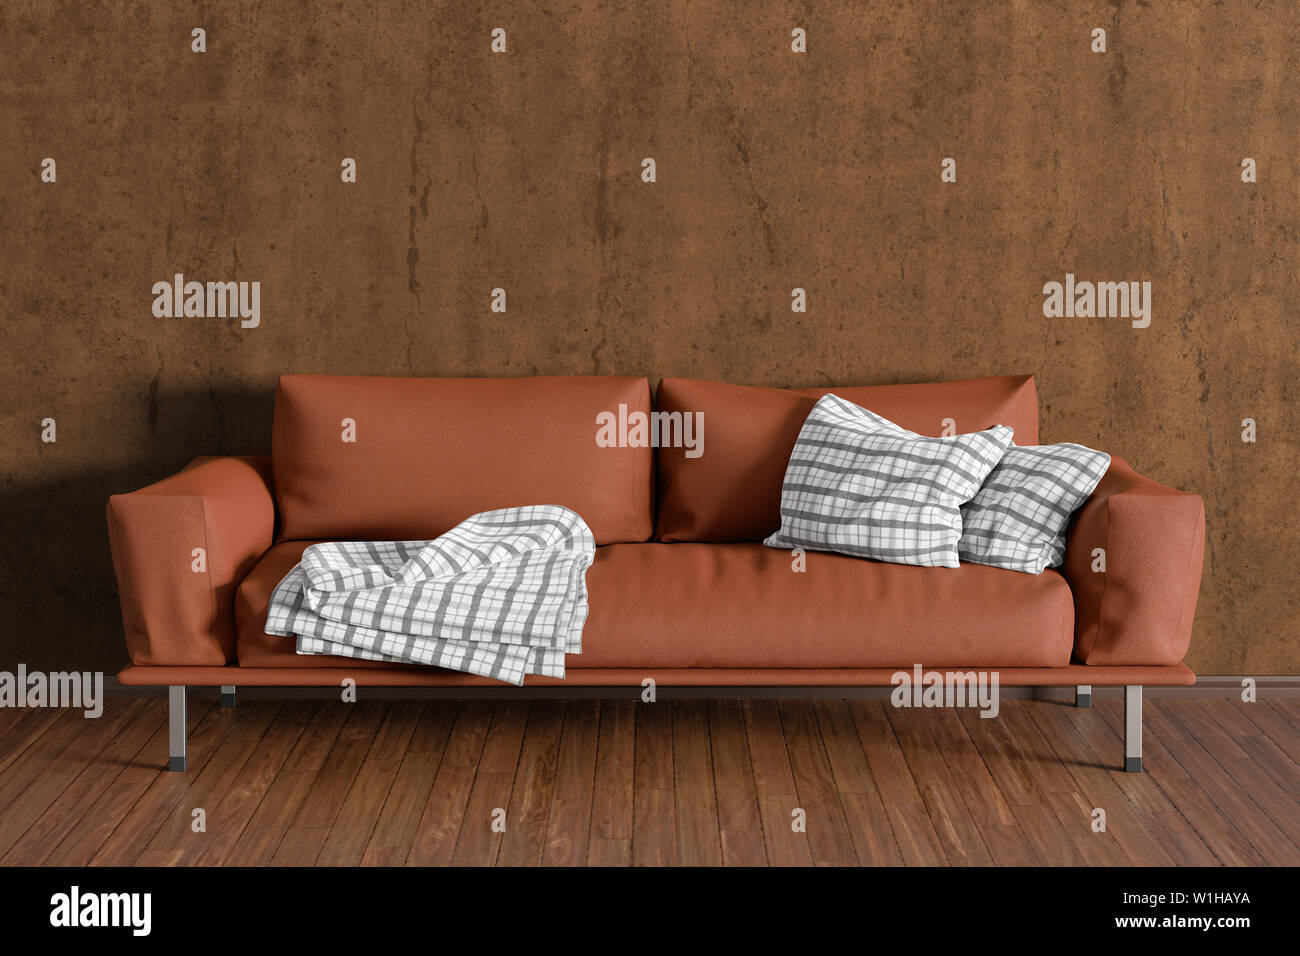 Remarkable Brown Leather Couch In Interior Of Living Room With Wooden Gmtry Best Dining Table And Chair Ideas Images Gmtryco